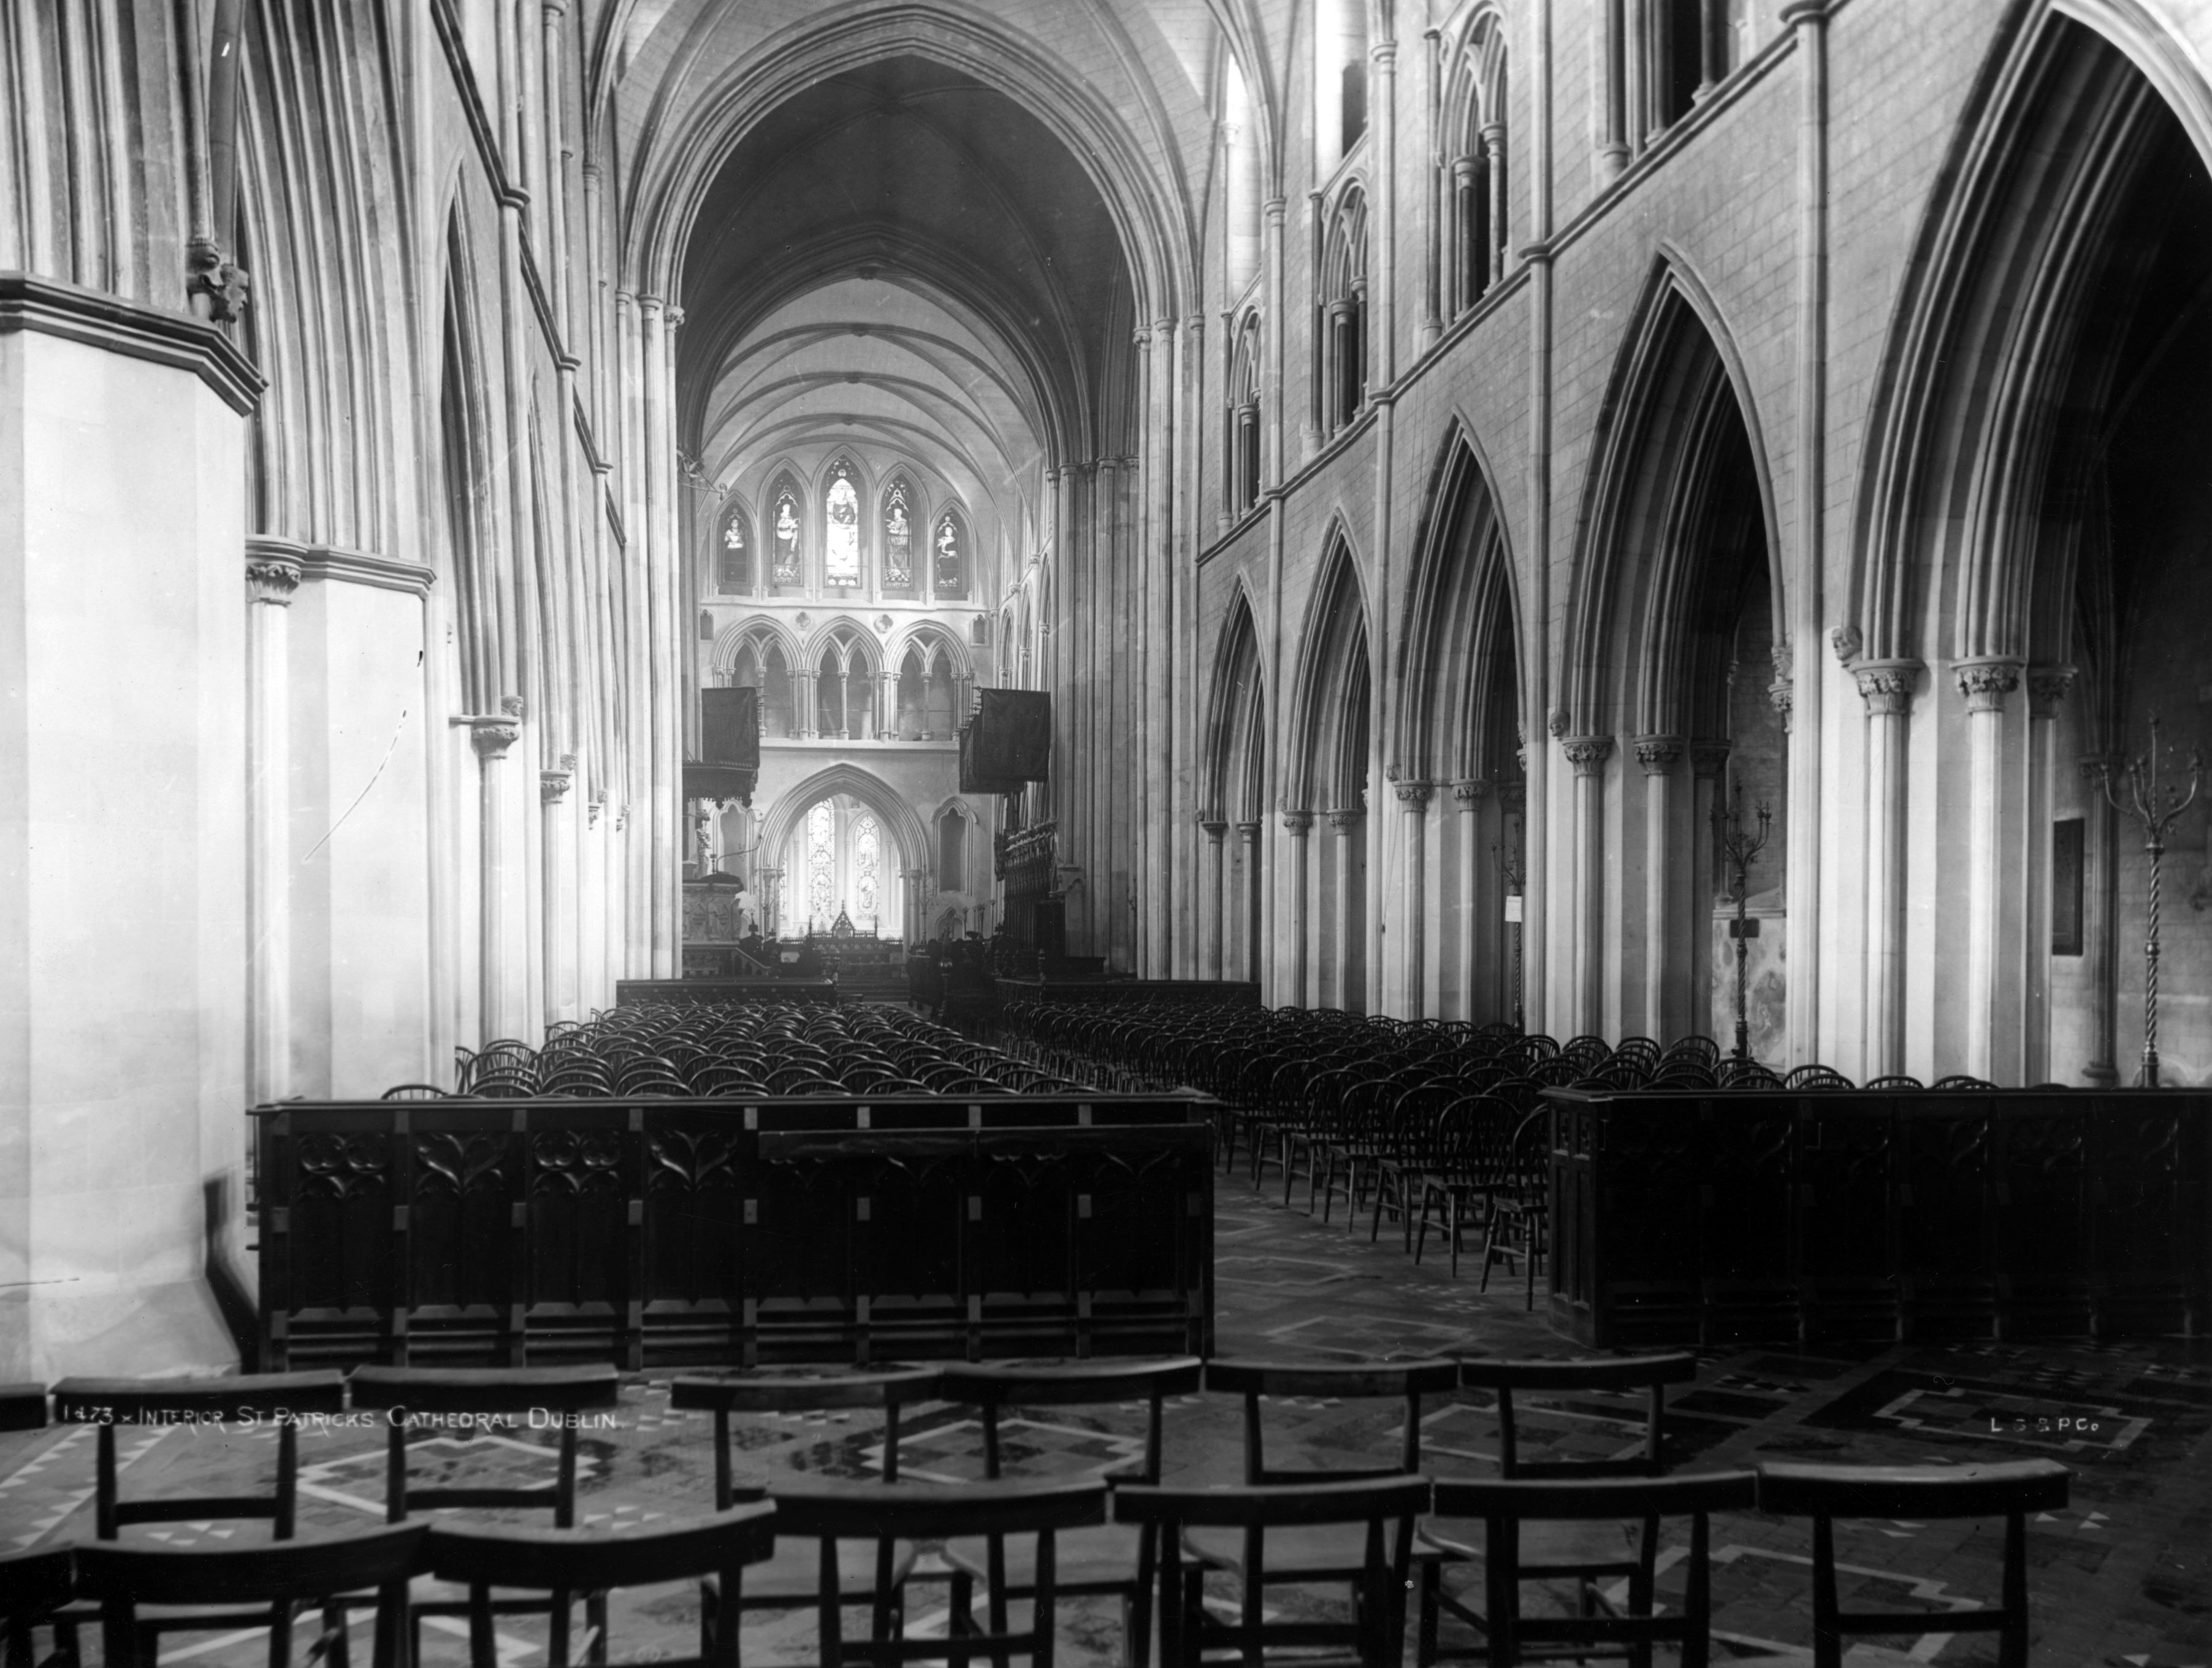 The interior of St Patrick's Cathedral in Dublin, circa 1910.